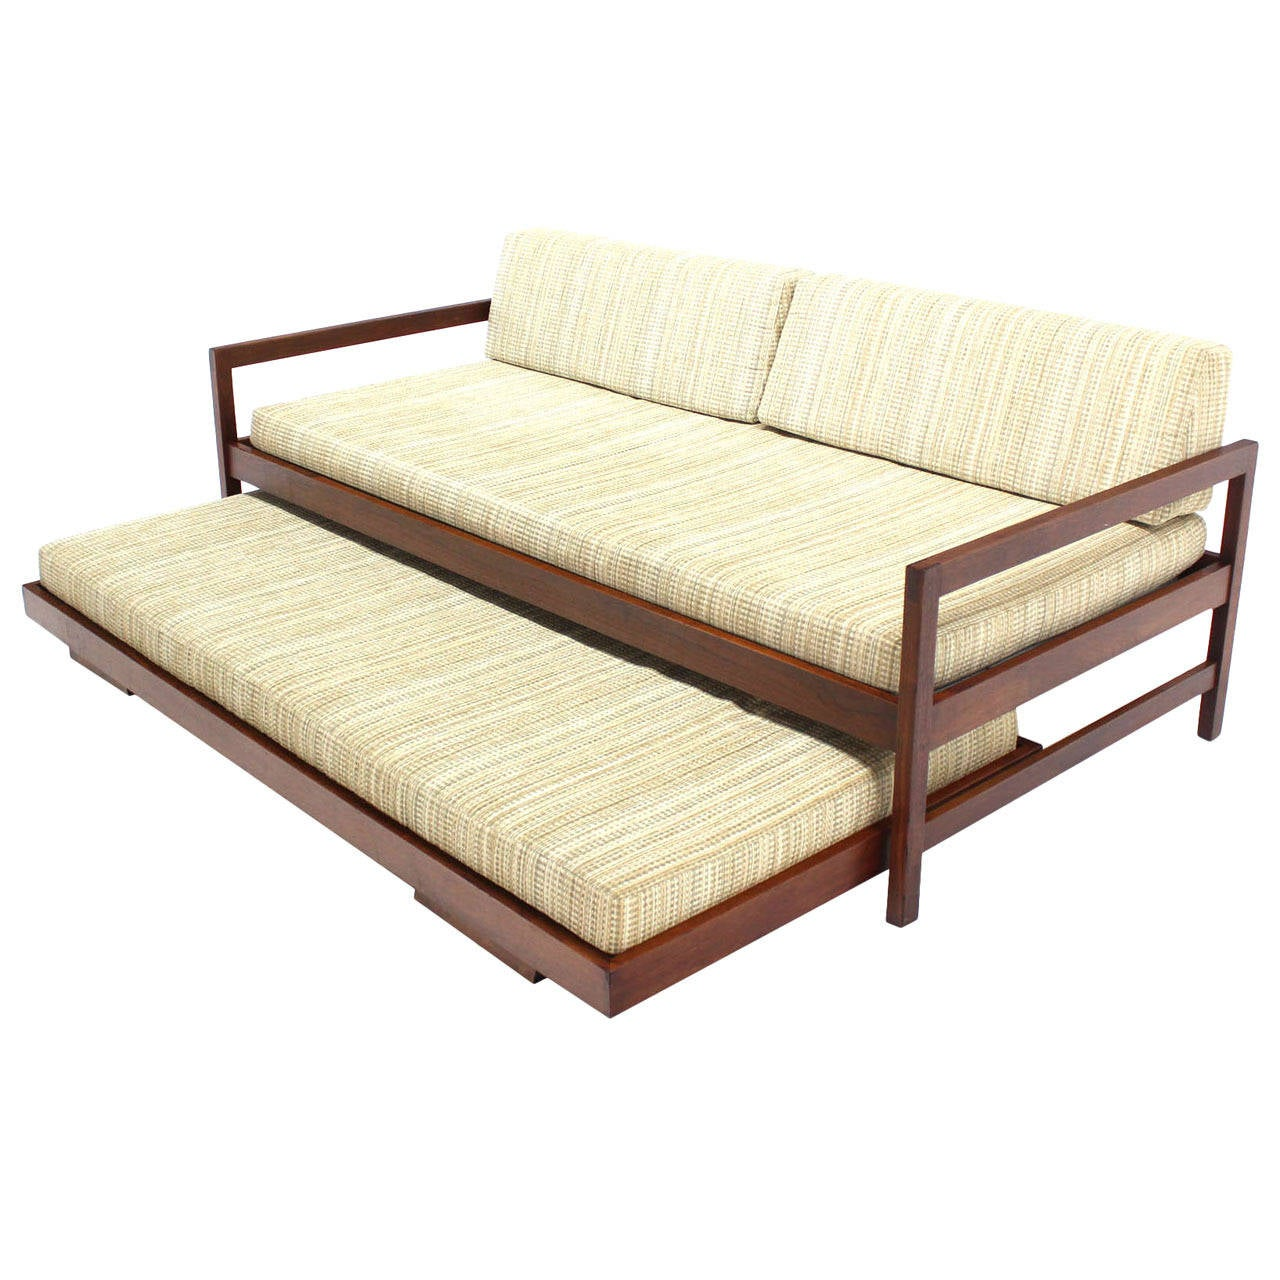 Solid Walnut Frame Mid Century Modern Trundle Pull Out Daybed For